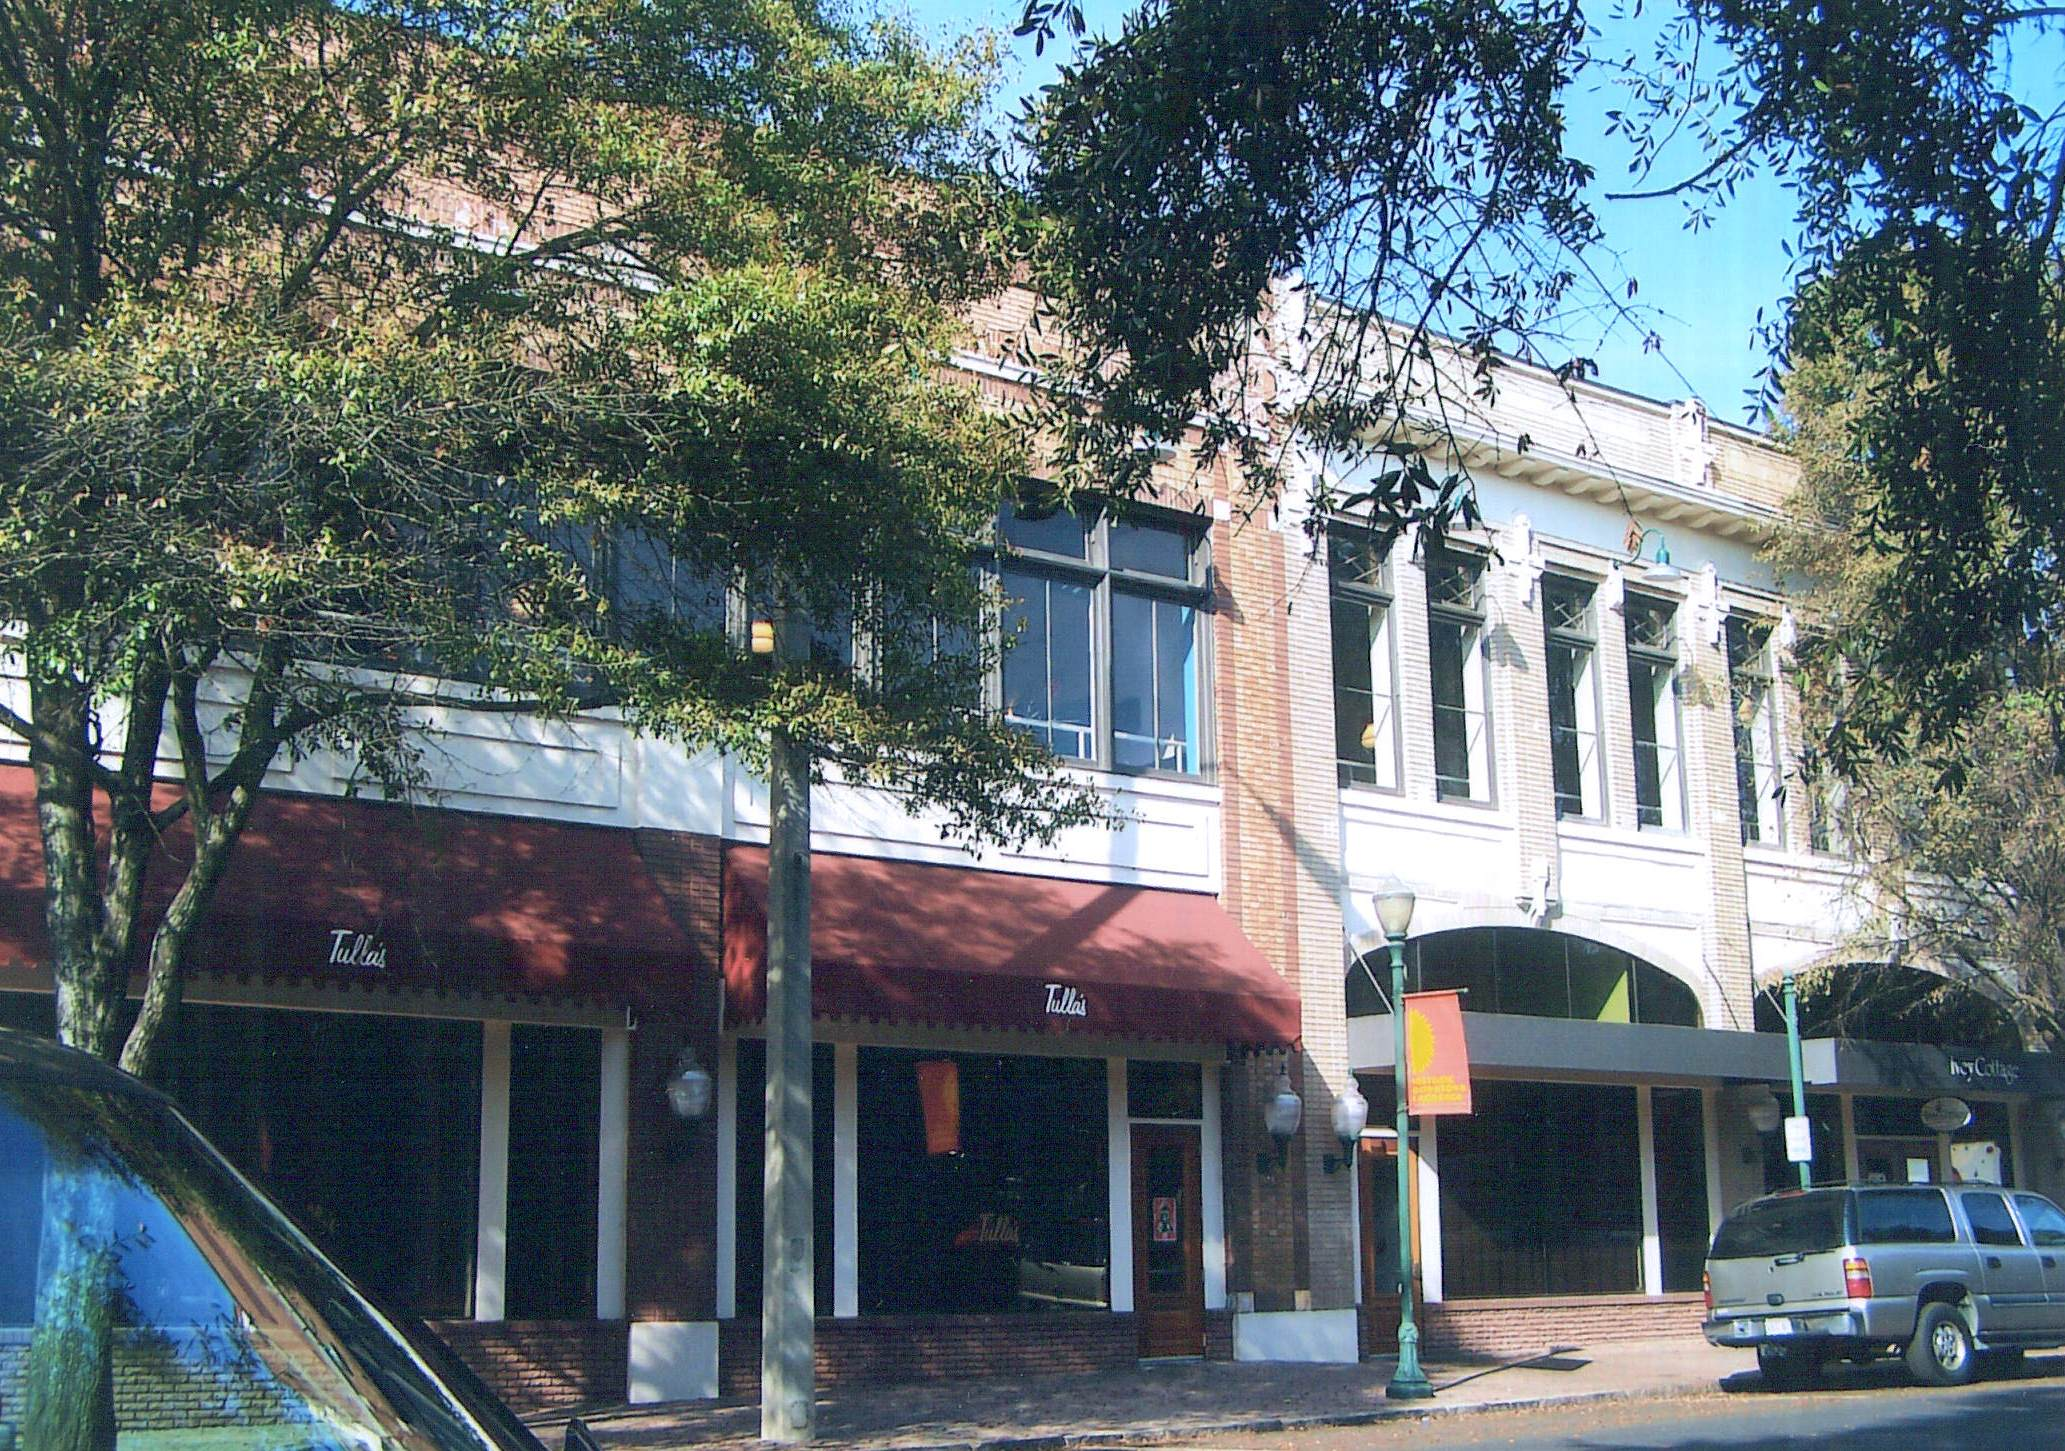 The LaGrange Commercial Historic District is listed on the National Register of Historic Places. LaGrange has published a walking tour of its historic downtown